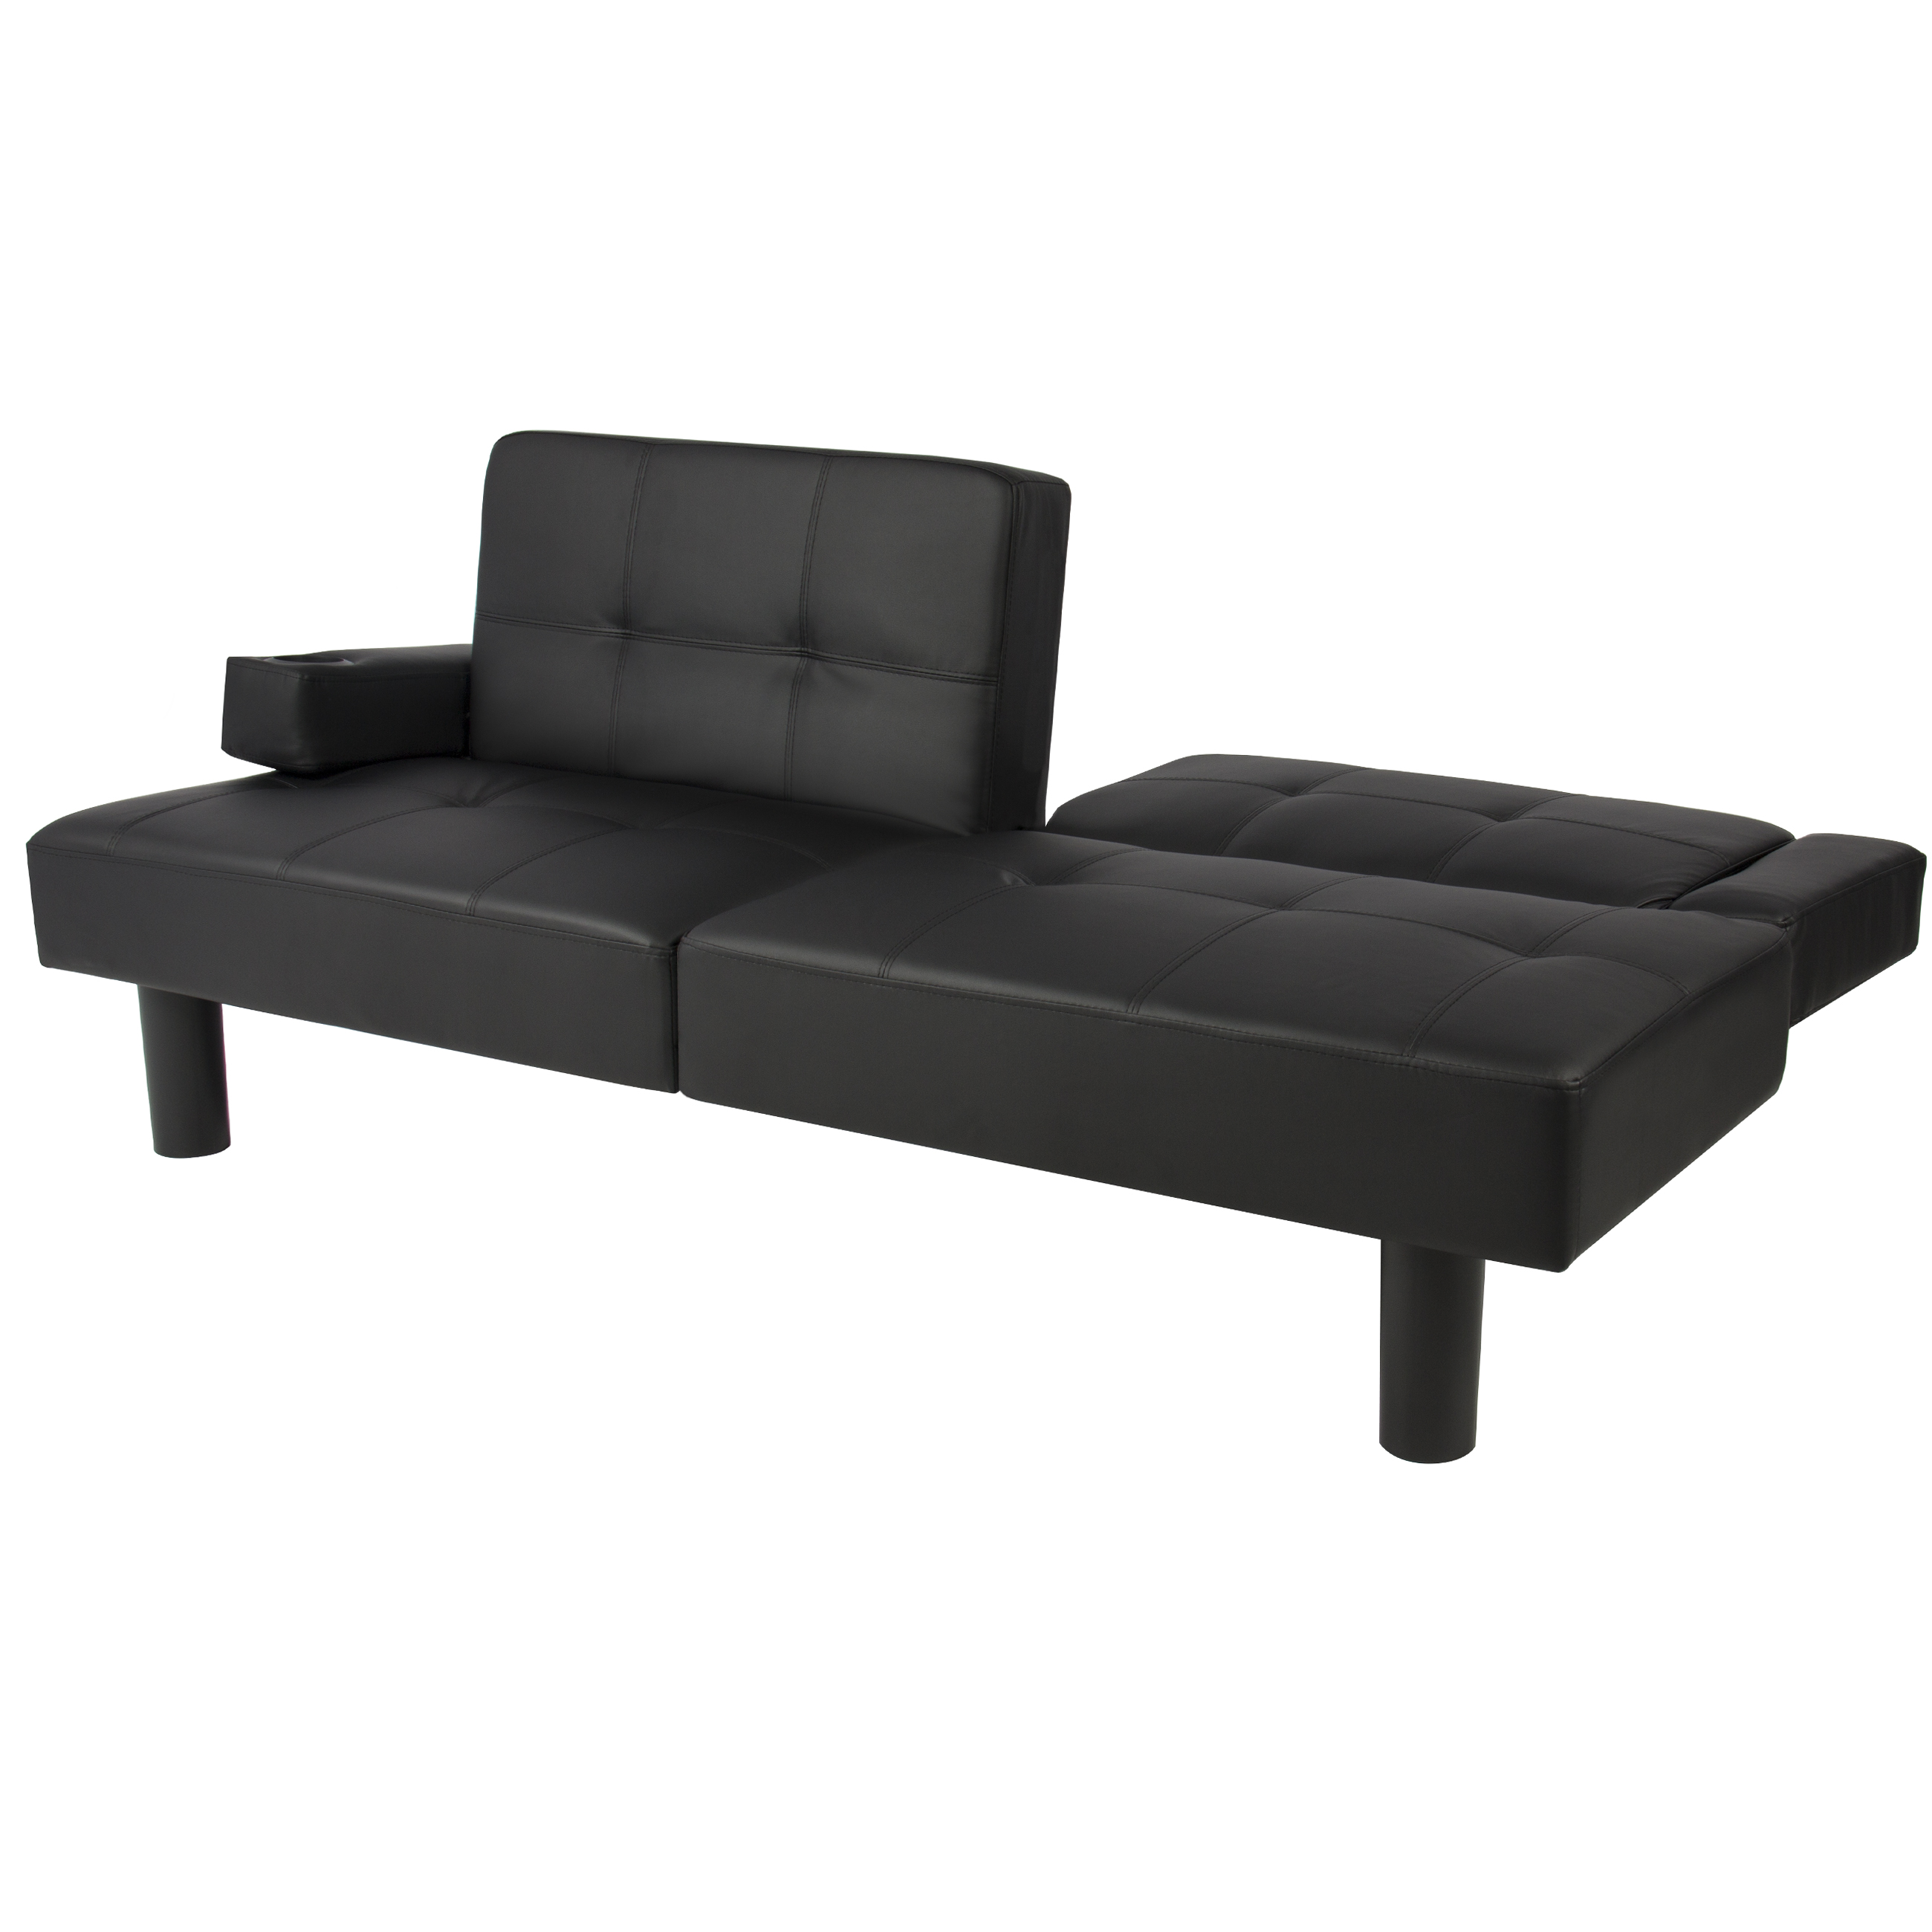 your furniture futon minnie at beds couch keep sectional cheap comfortable couches room bed walmart mouse stylish living and kid to cushions covers